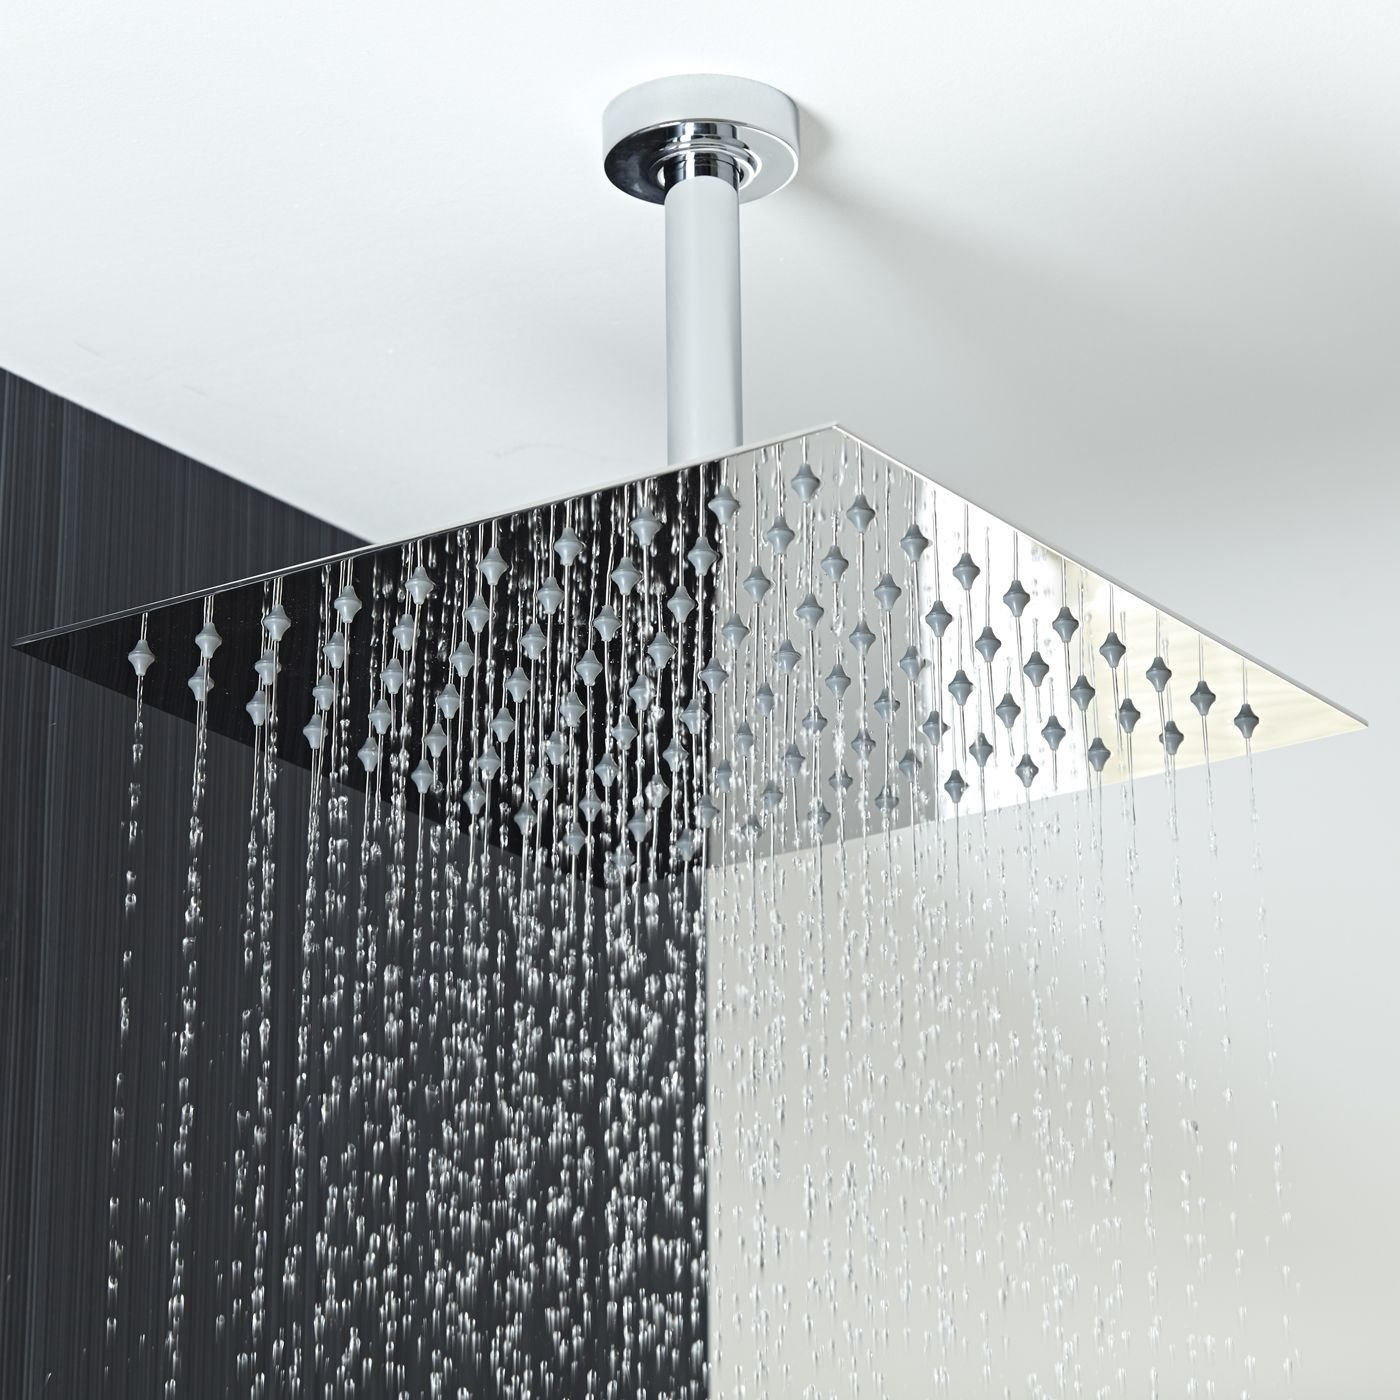 Koko Brand Rain16 16-inch Solid Square Ultra Thin Rain Shower Head ...